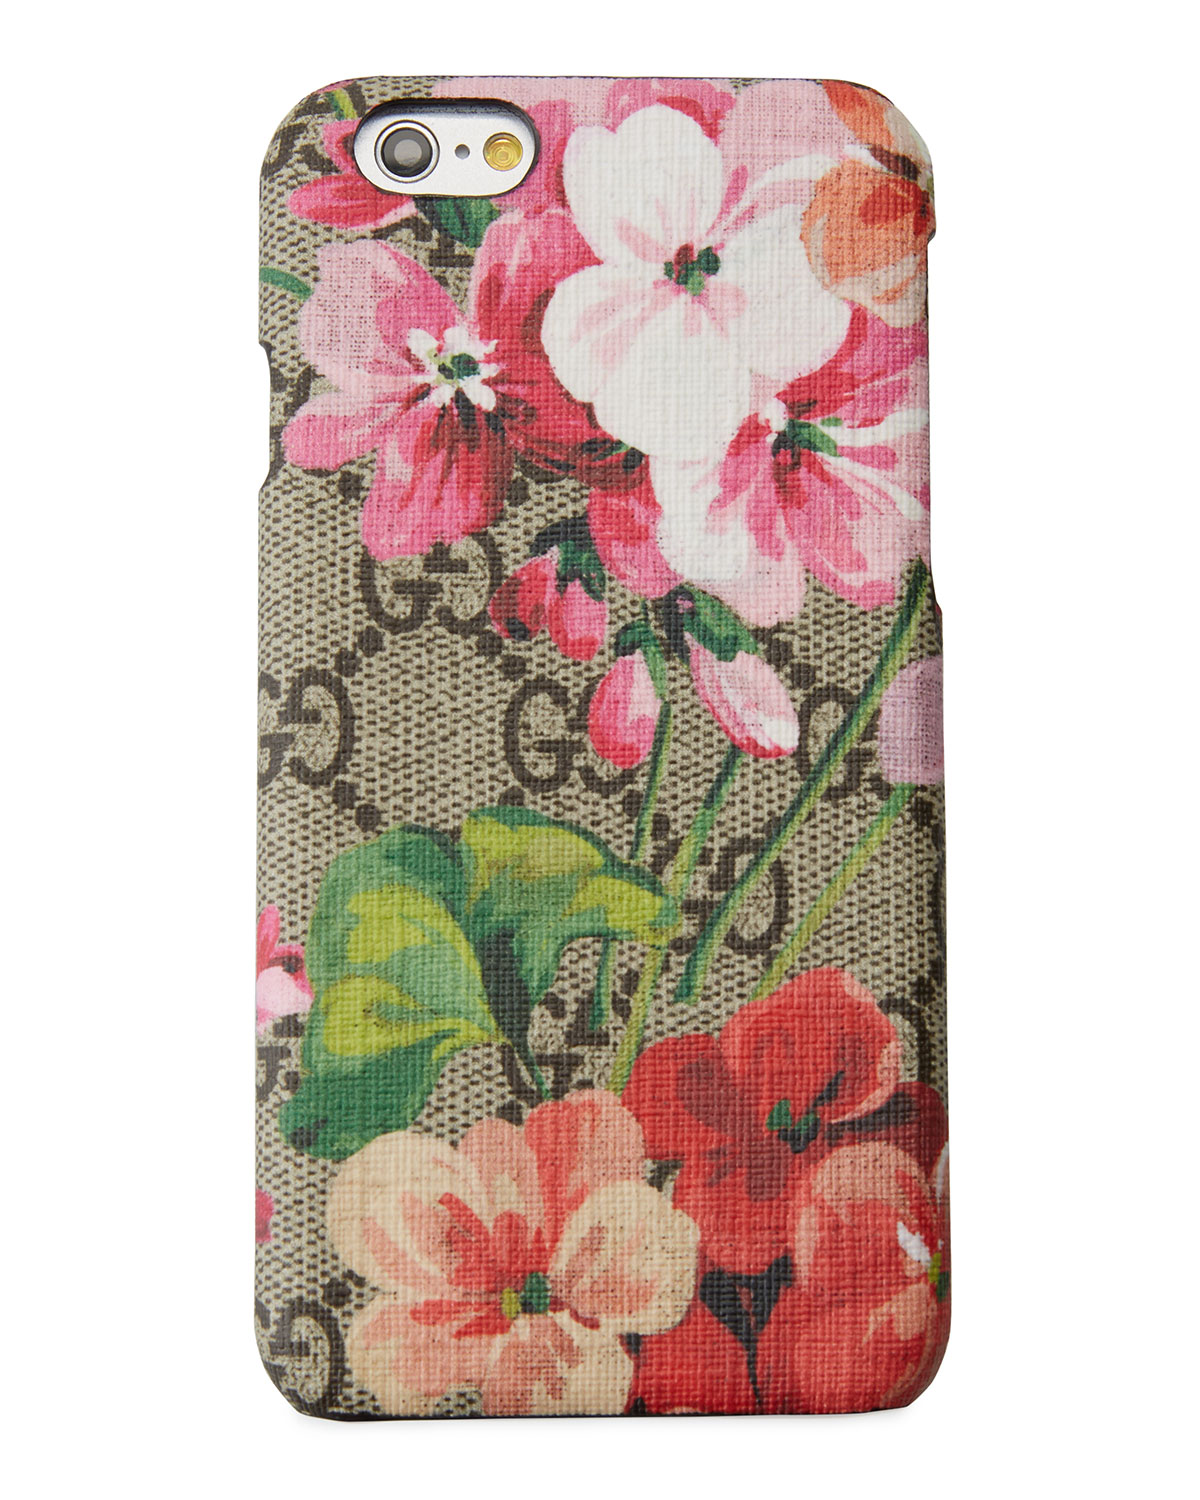 0ad3570faccc4 Gucci GG Blooms iPhone 6 6s Case